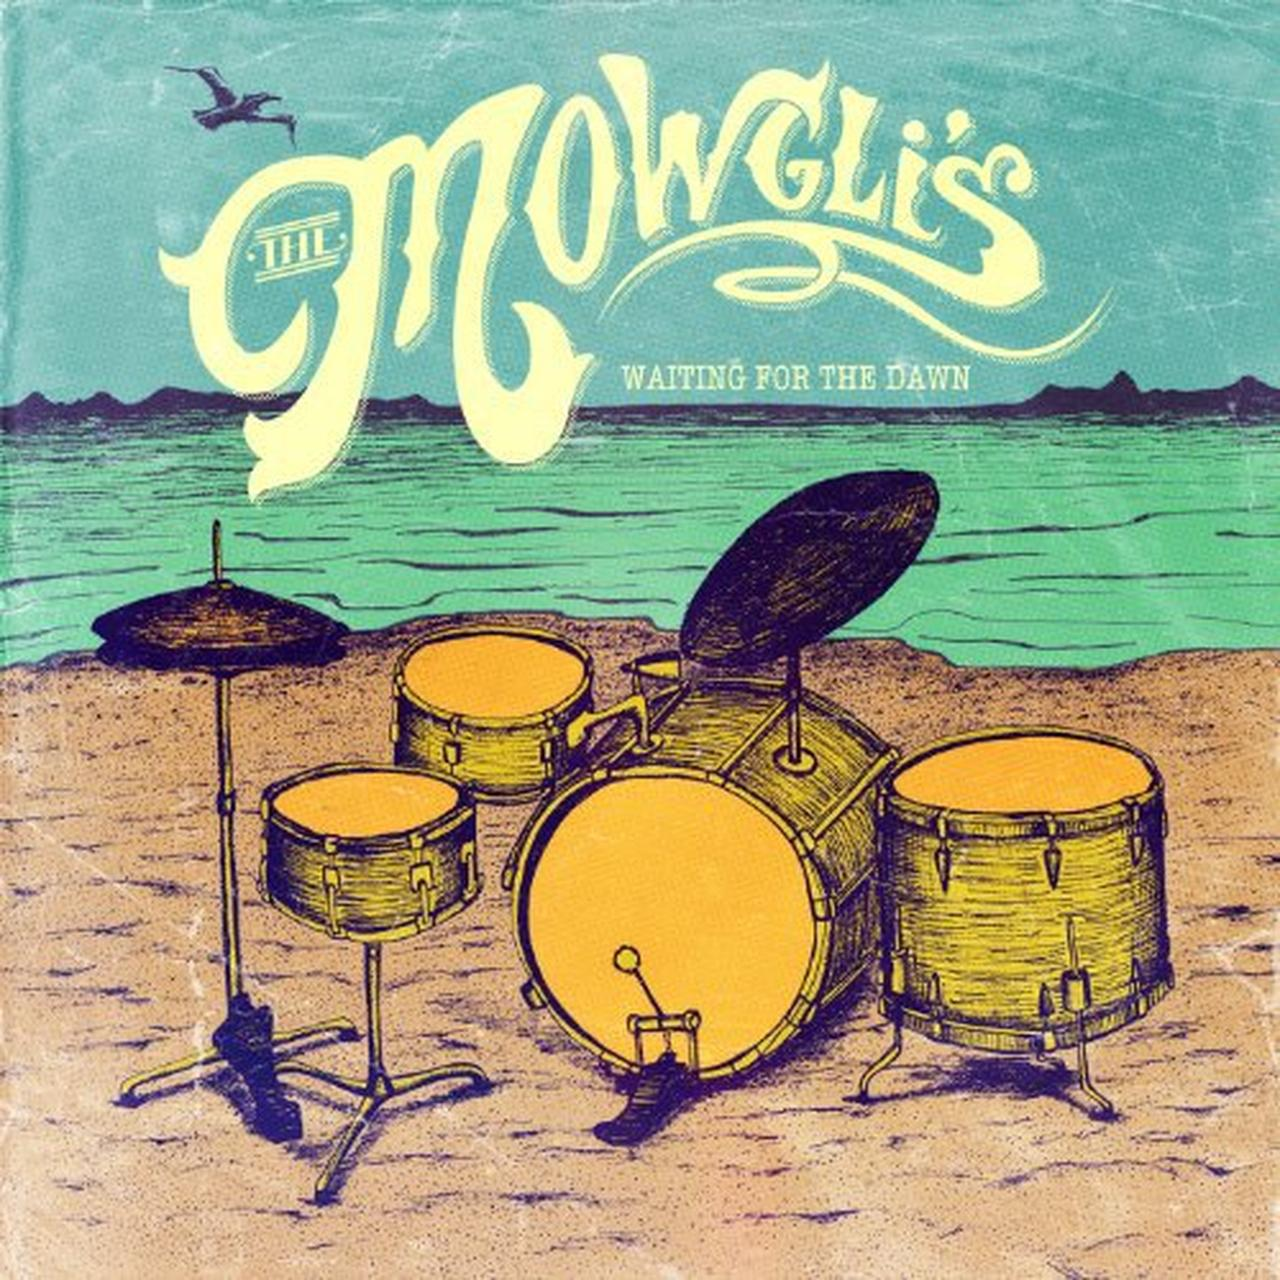 The Mowgli's WAITING FOR THE DAWN Vinyl Record. Tap to expand